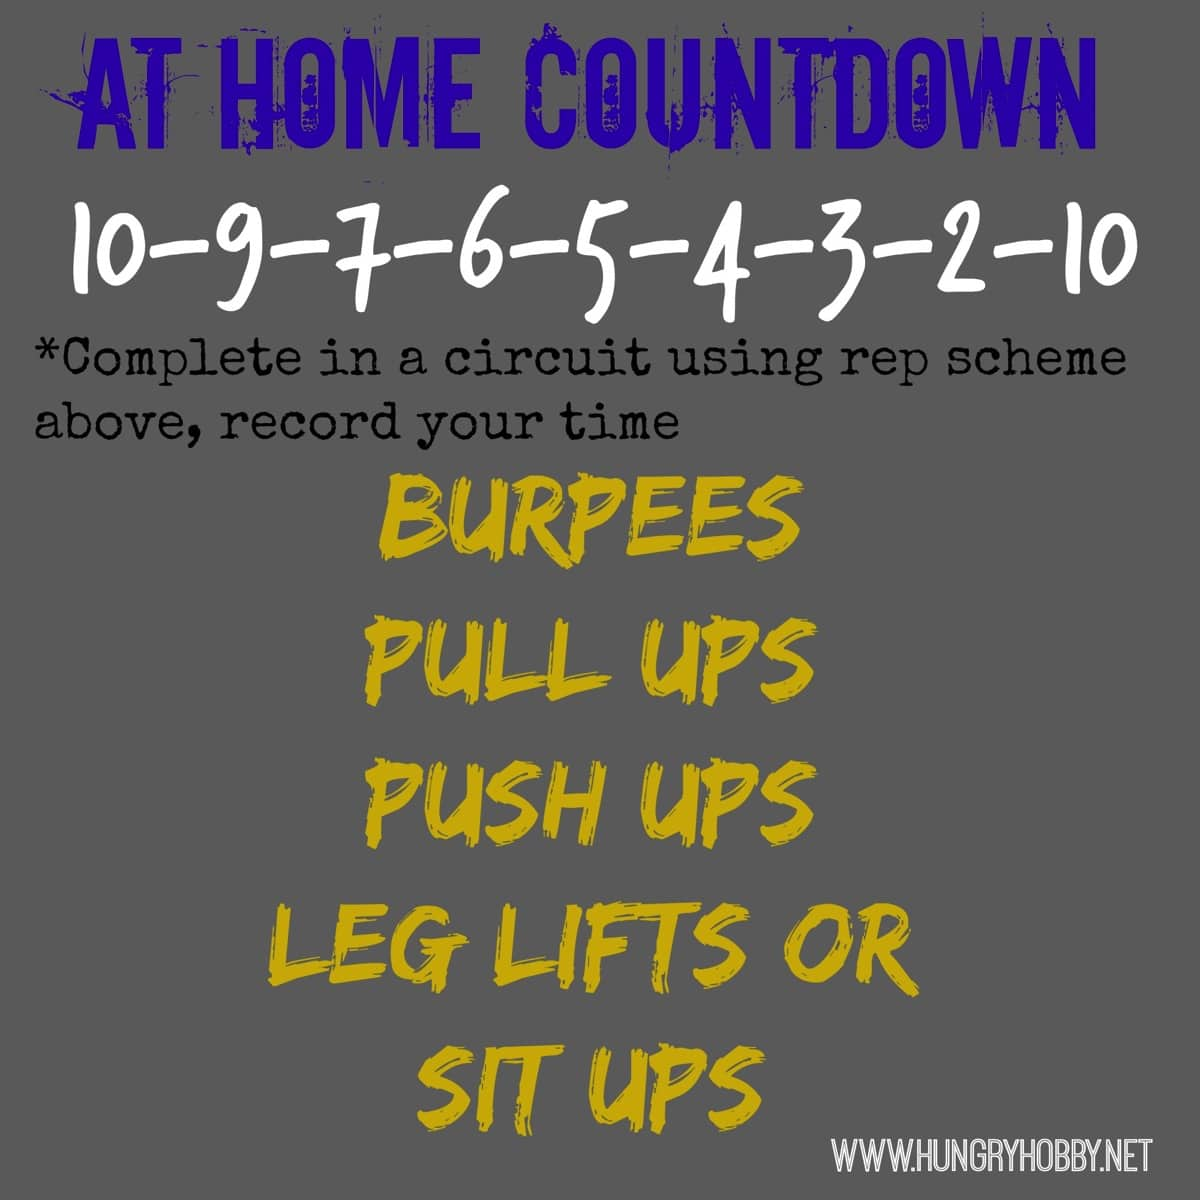 At home countdown crossfit